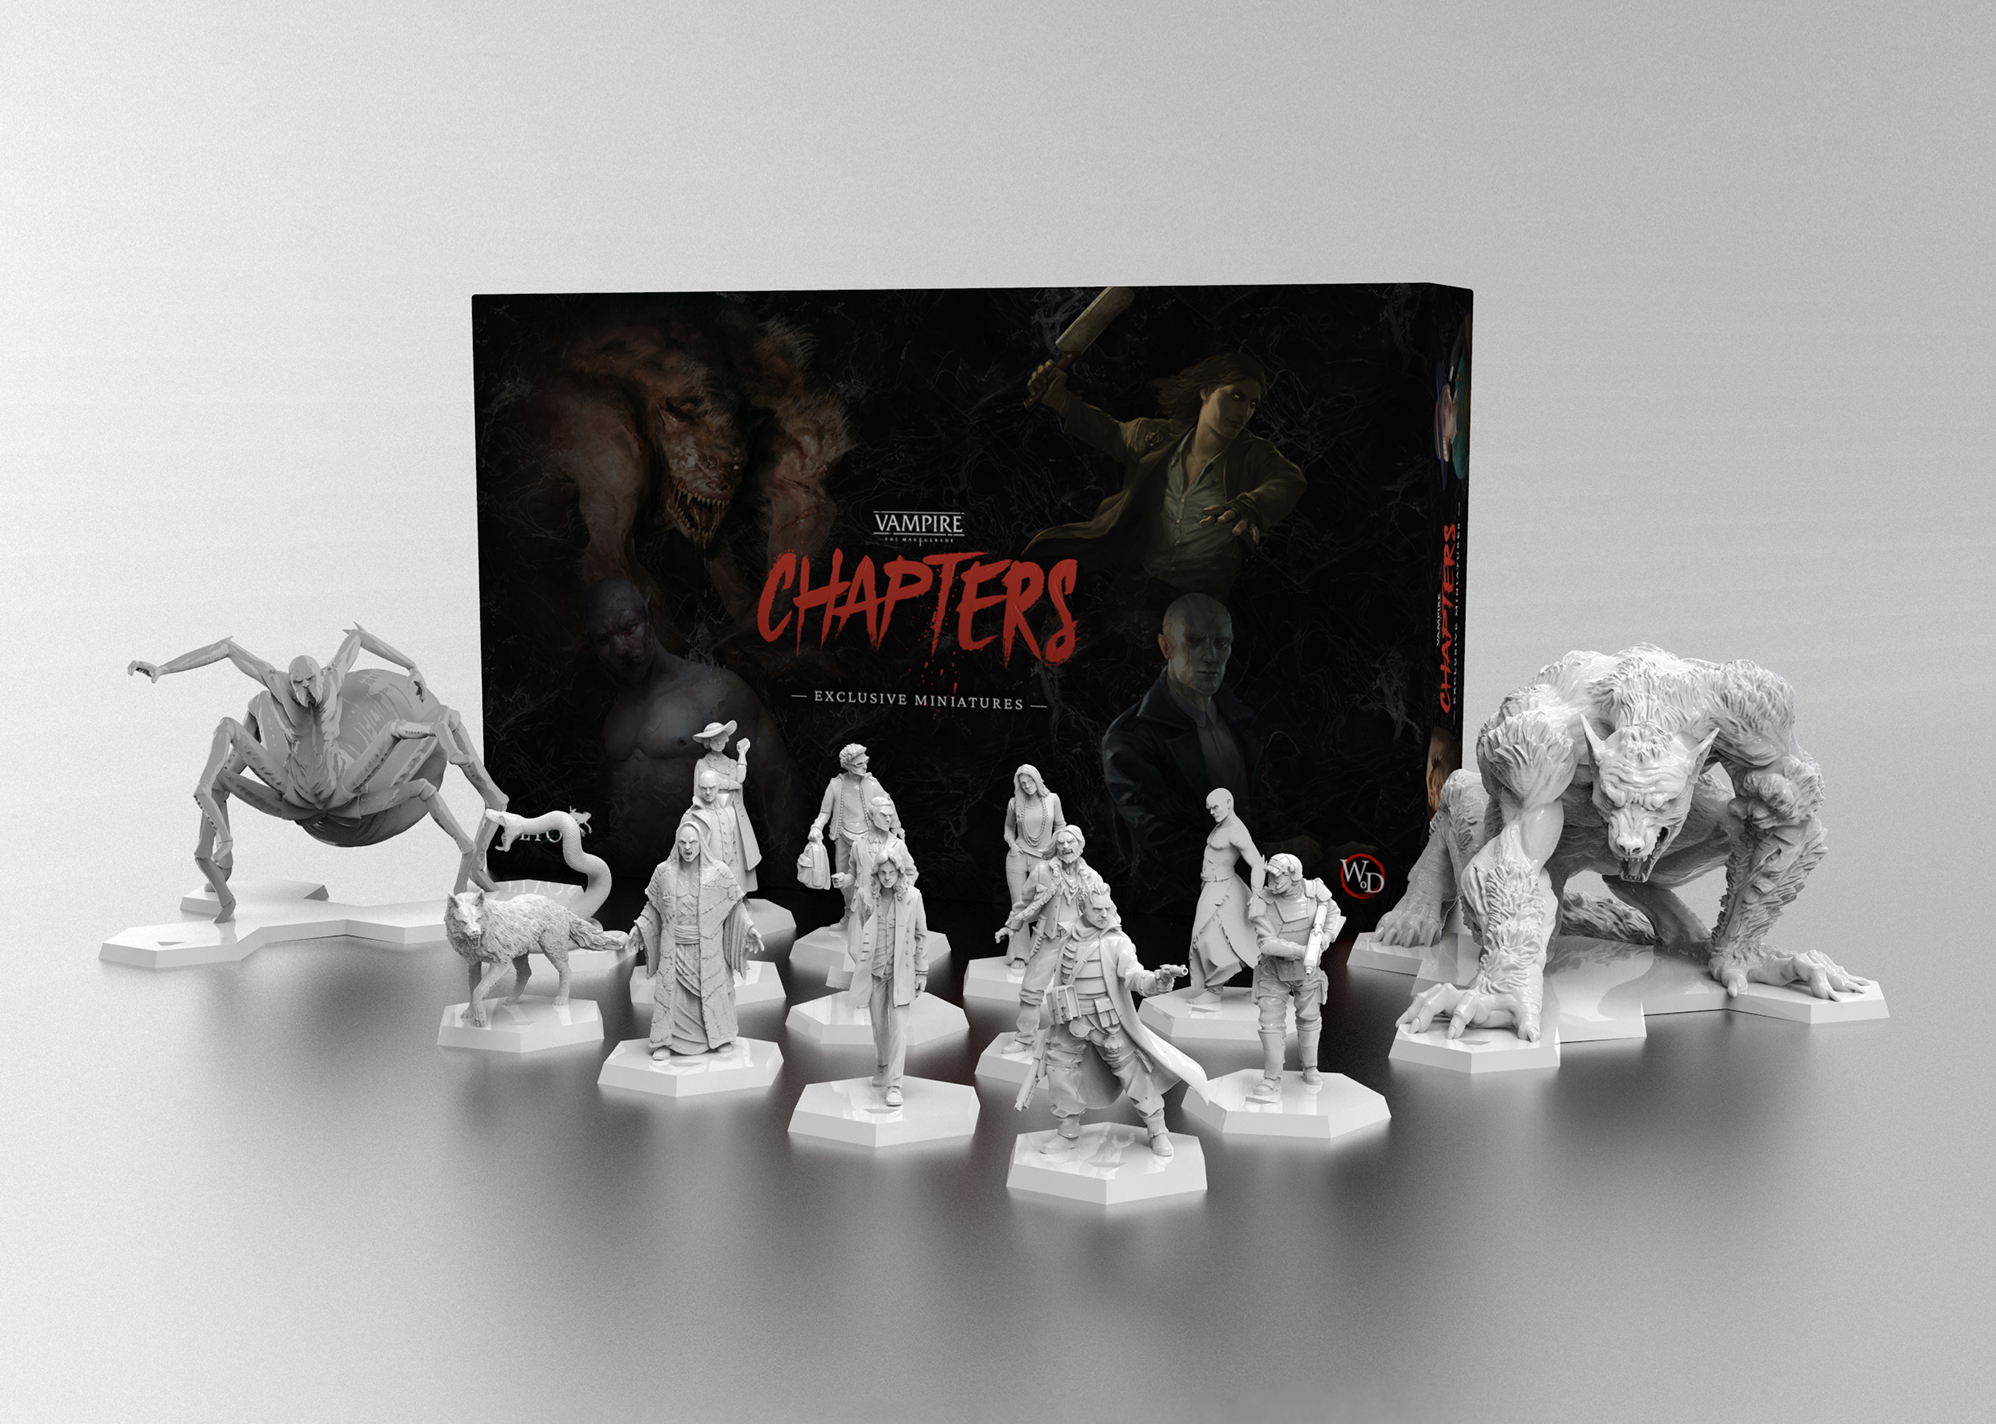 A render of some of the miniatures included with Vampire: The Masquerade - Chapters. There's a spider and a very large wolf, as well as many humanoids, standing in front of the black box.